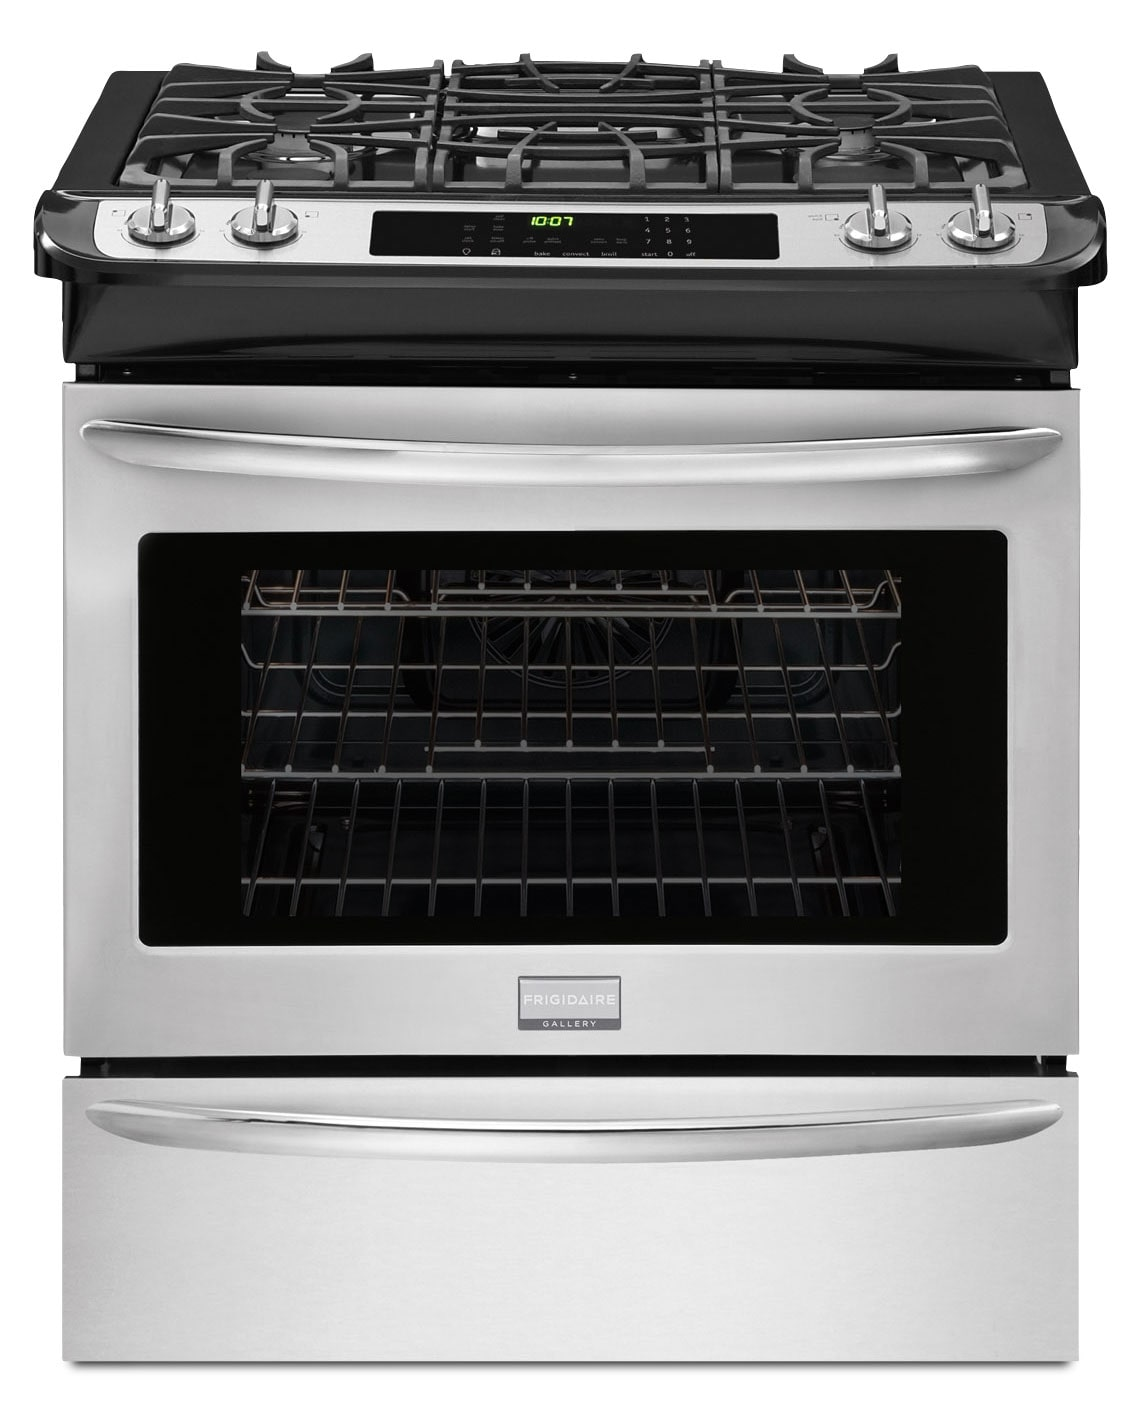 Cooking Products - Frigidaire Gallery Stainless Steel Slide-In Gas Convection Range (4.5 Cu. Ft.) - FGGS3065PF